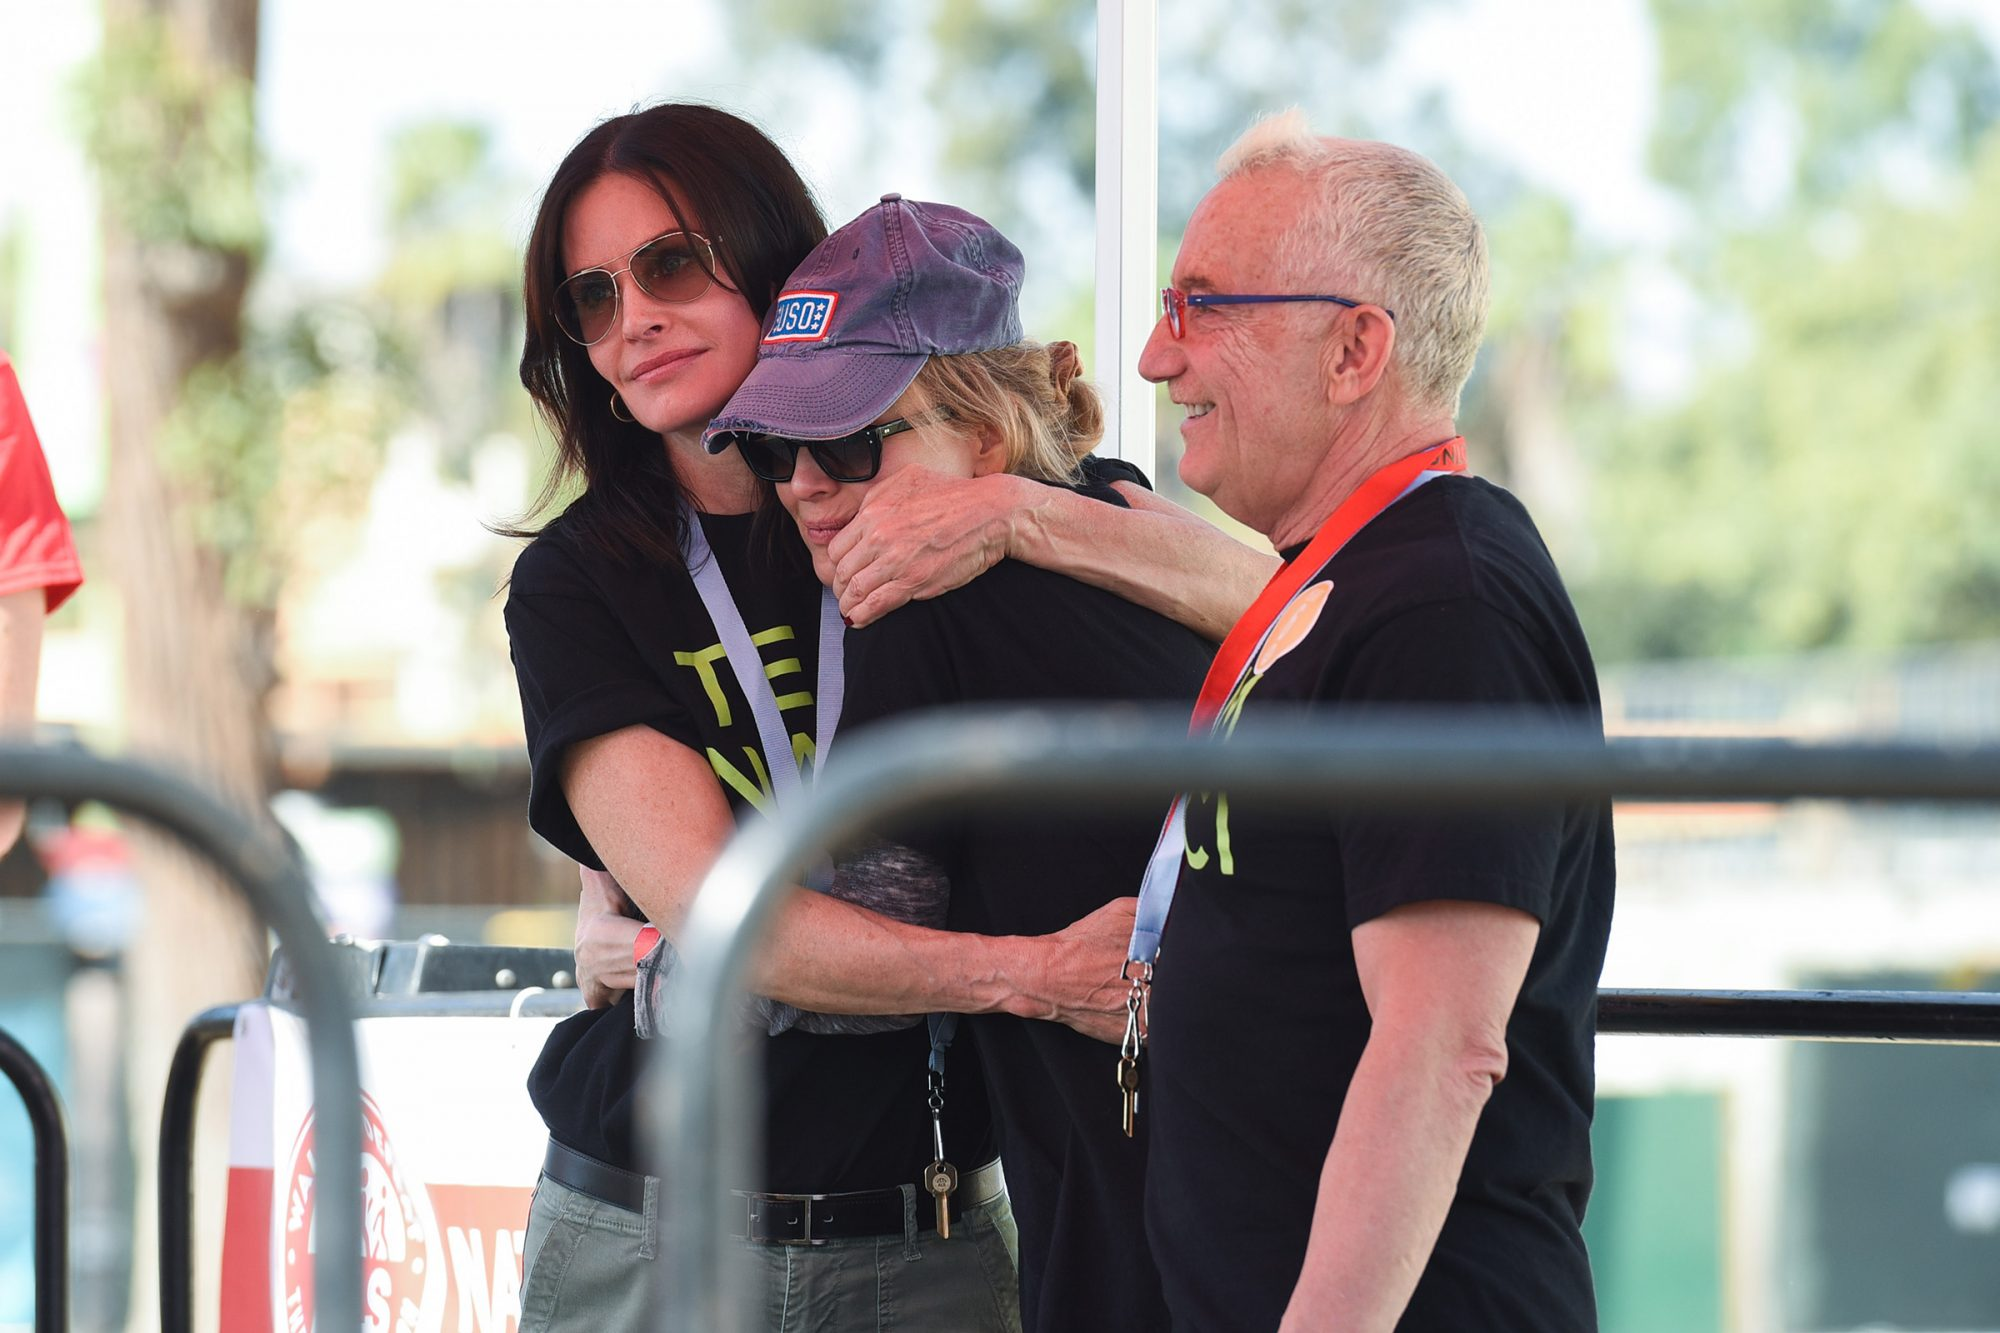 """Nanci Ryder, Courtney Cox and Renée Zellweger participate in Nanci Ryder's """"Team Nanci"""" In The 16th Annual LA County Walk To Defeat ALS at Exposition Park on November 04, 2018 in Los Angeles, California. (Photo by Presley Ann/Getty Images)"""